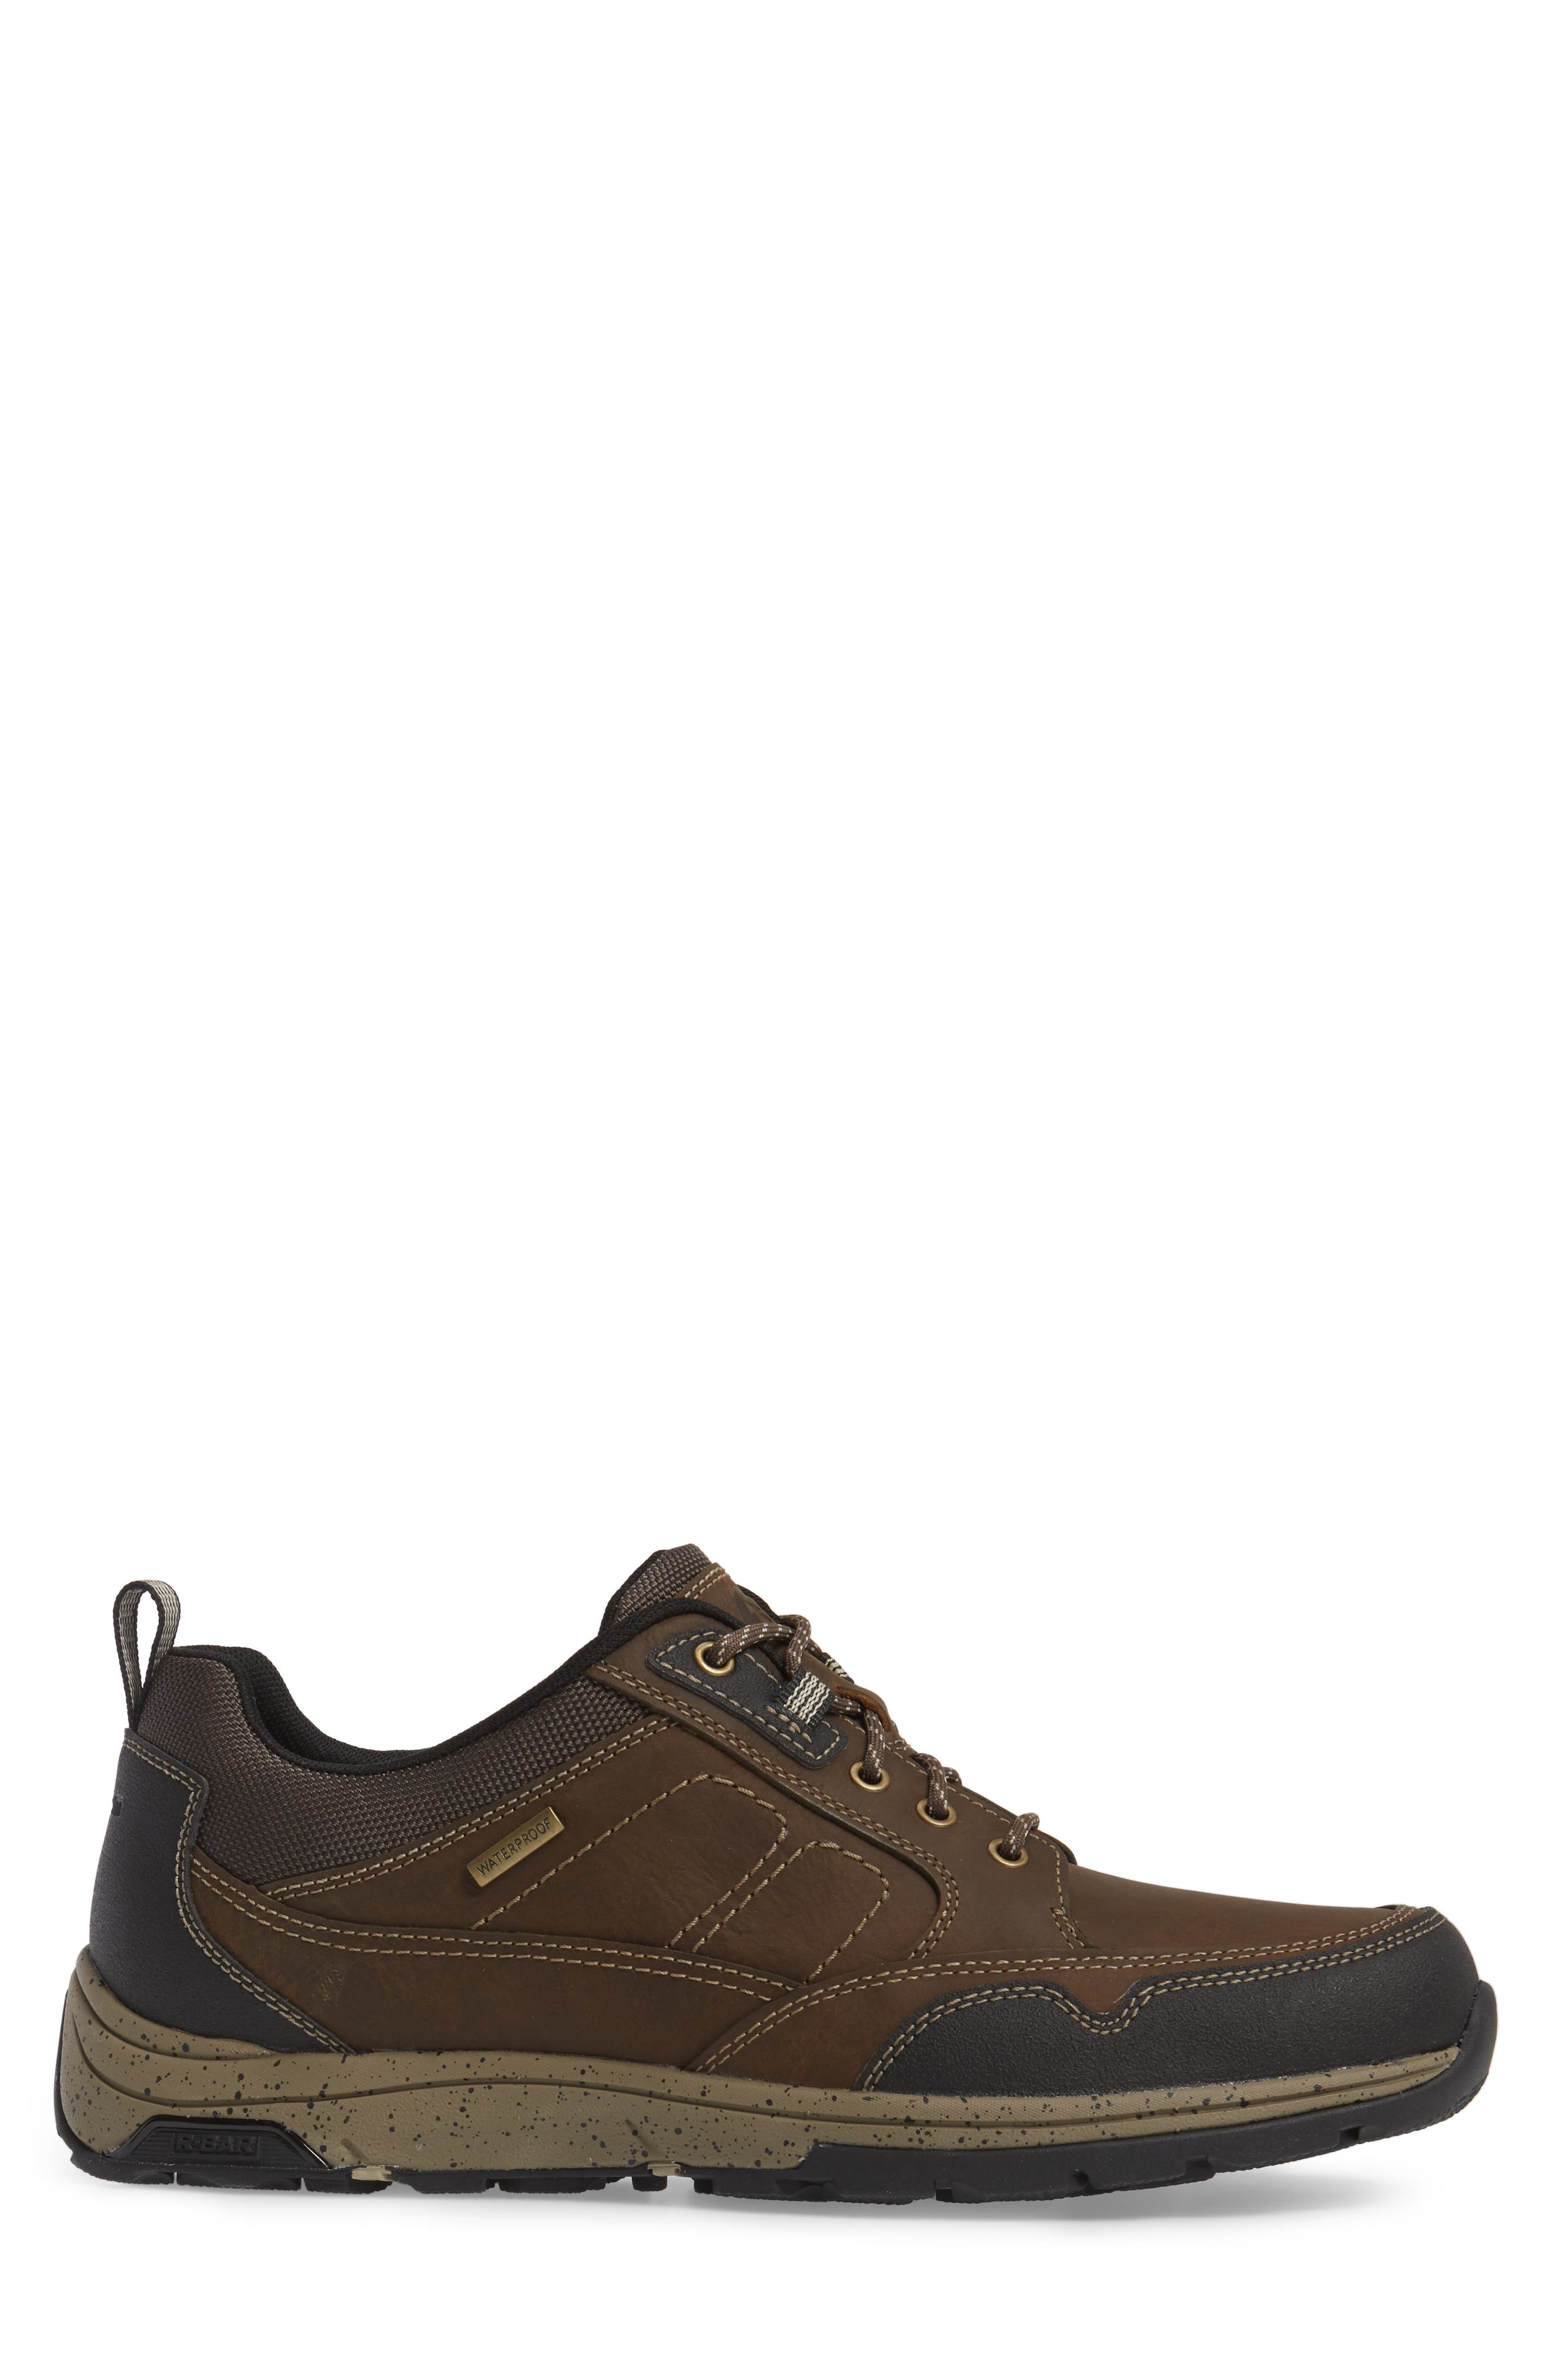 Trukka Hiking Shoe,                             Alternate thumbnail 3, color,                             TAUPE